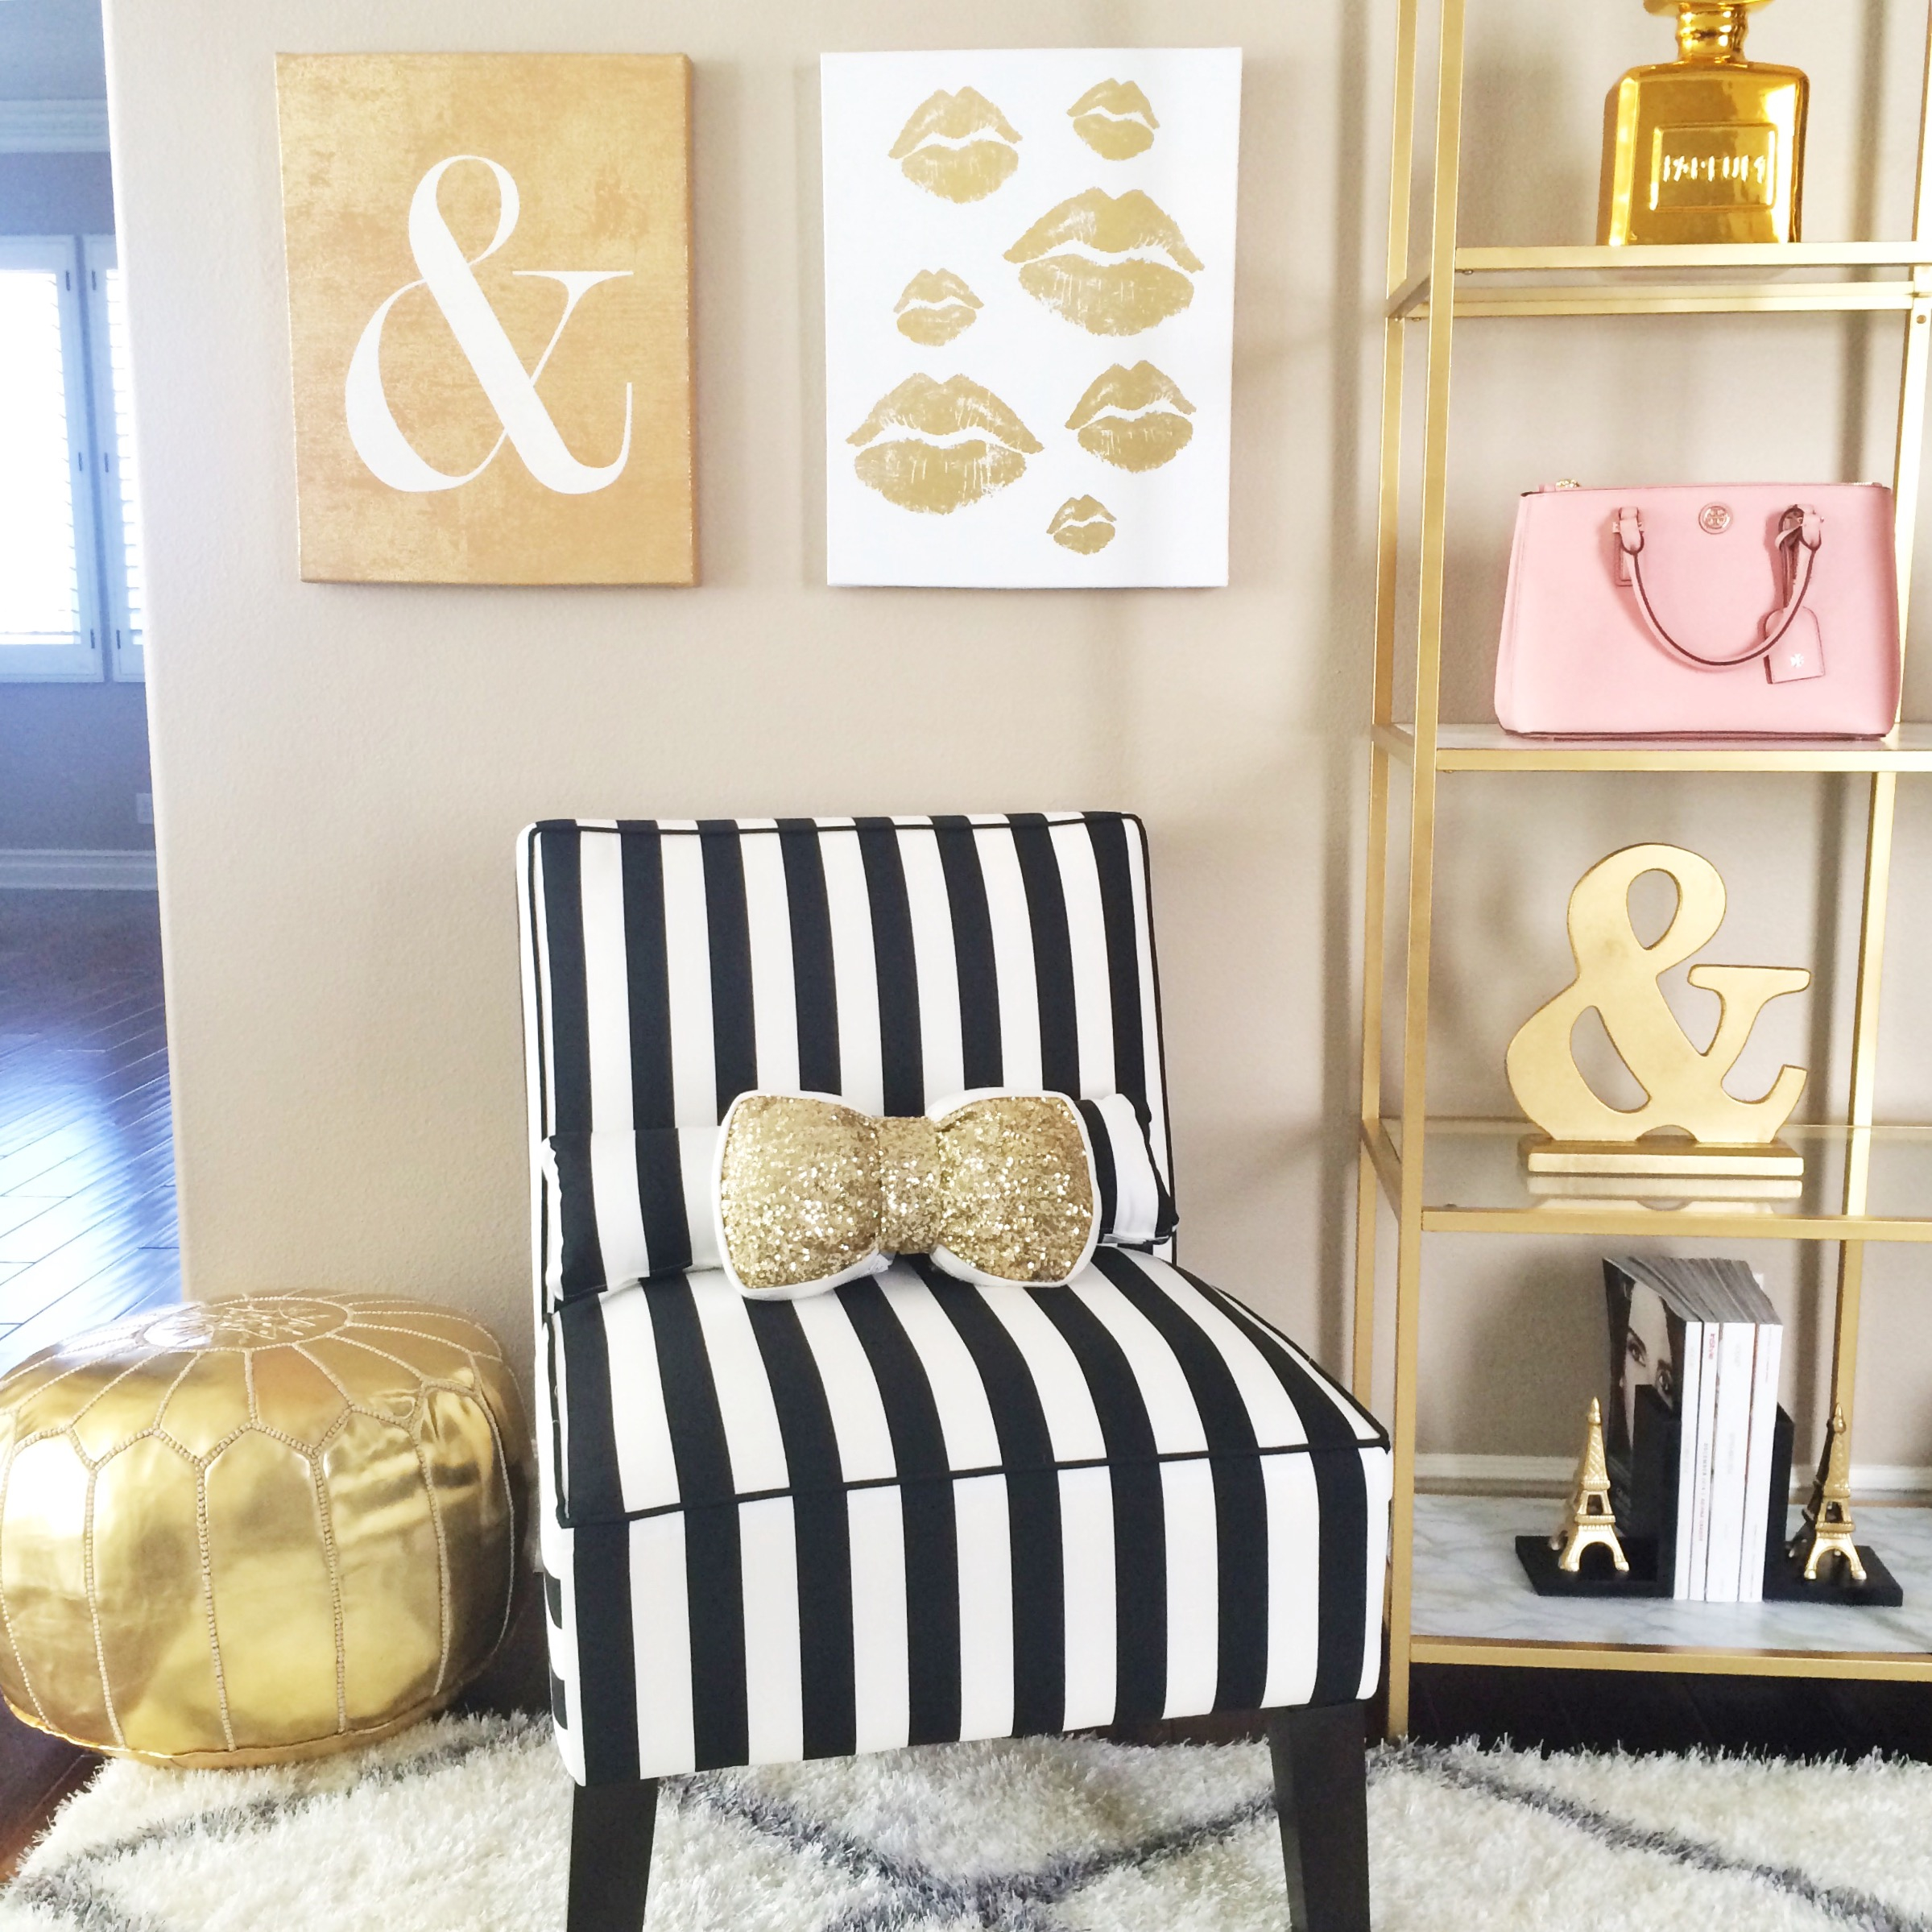 Amazing Gold Room Decor Ideas 30 About Remodel With